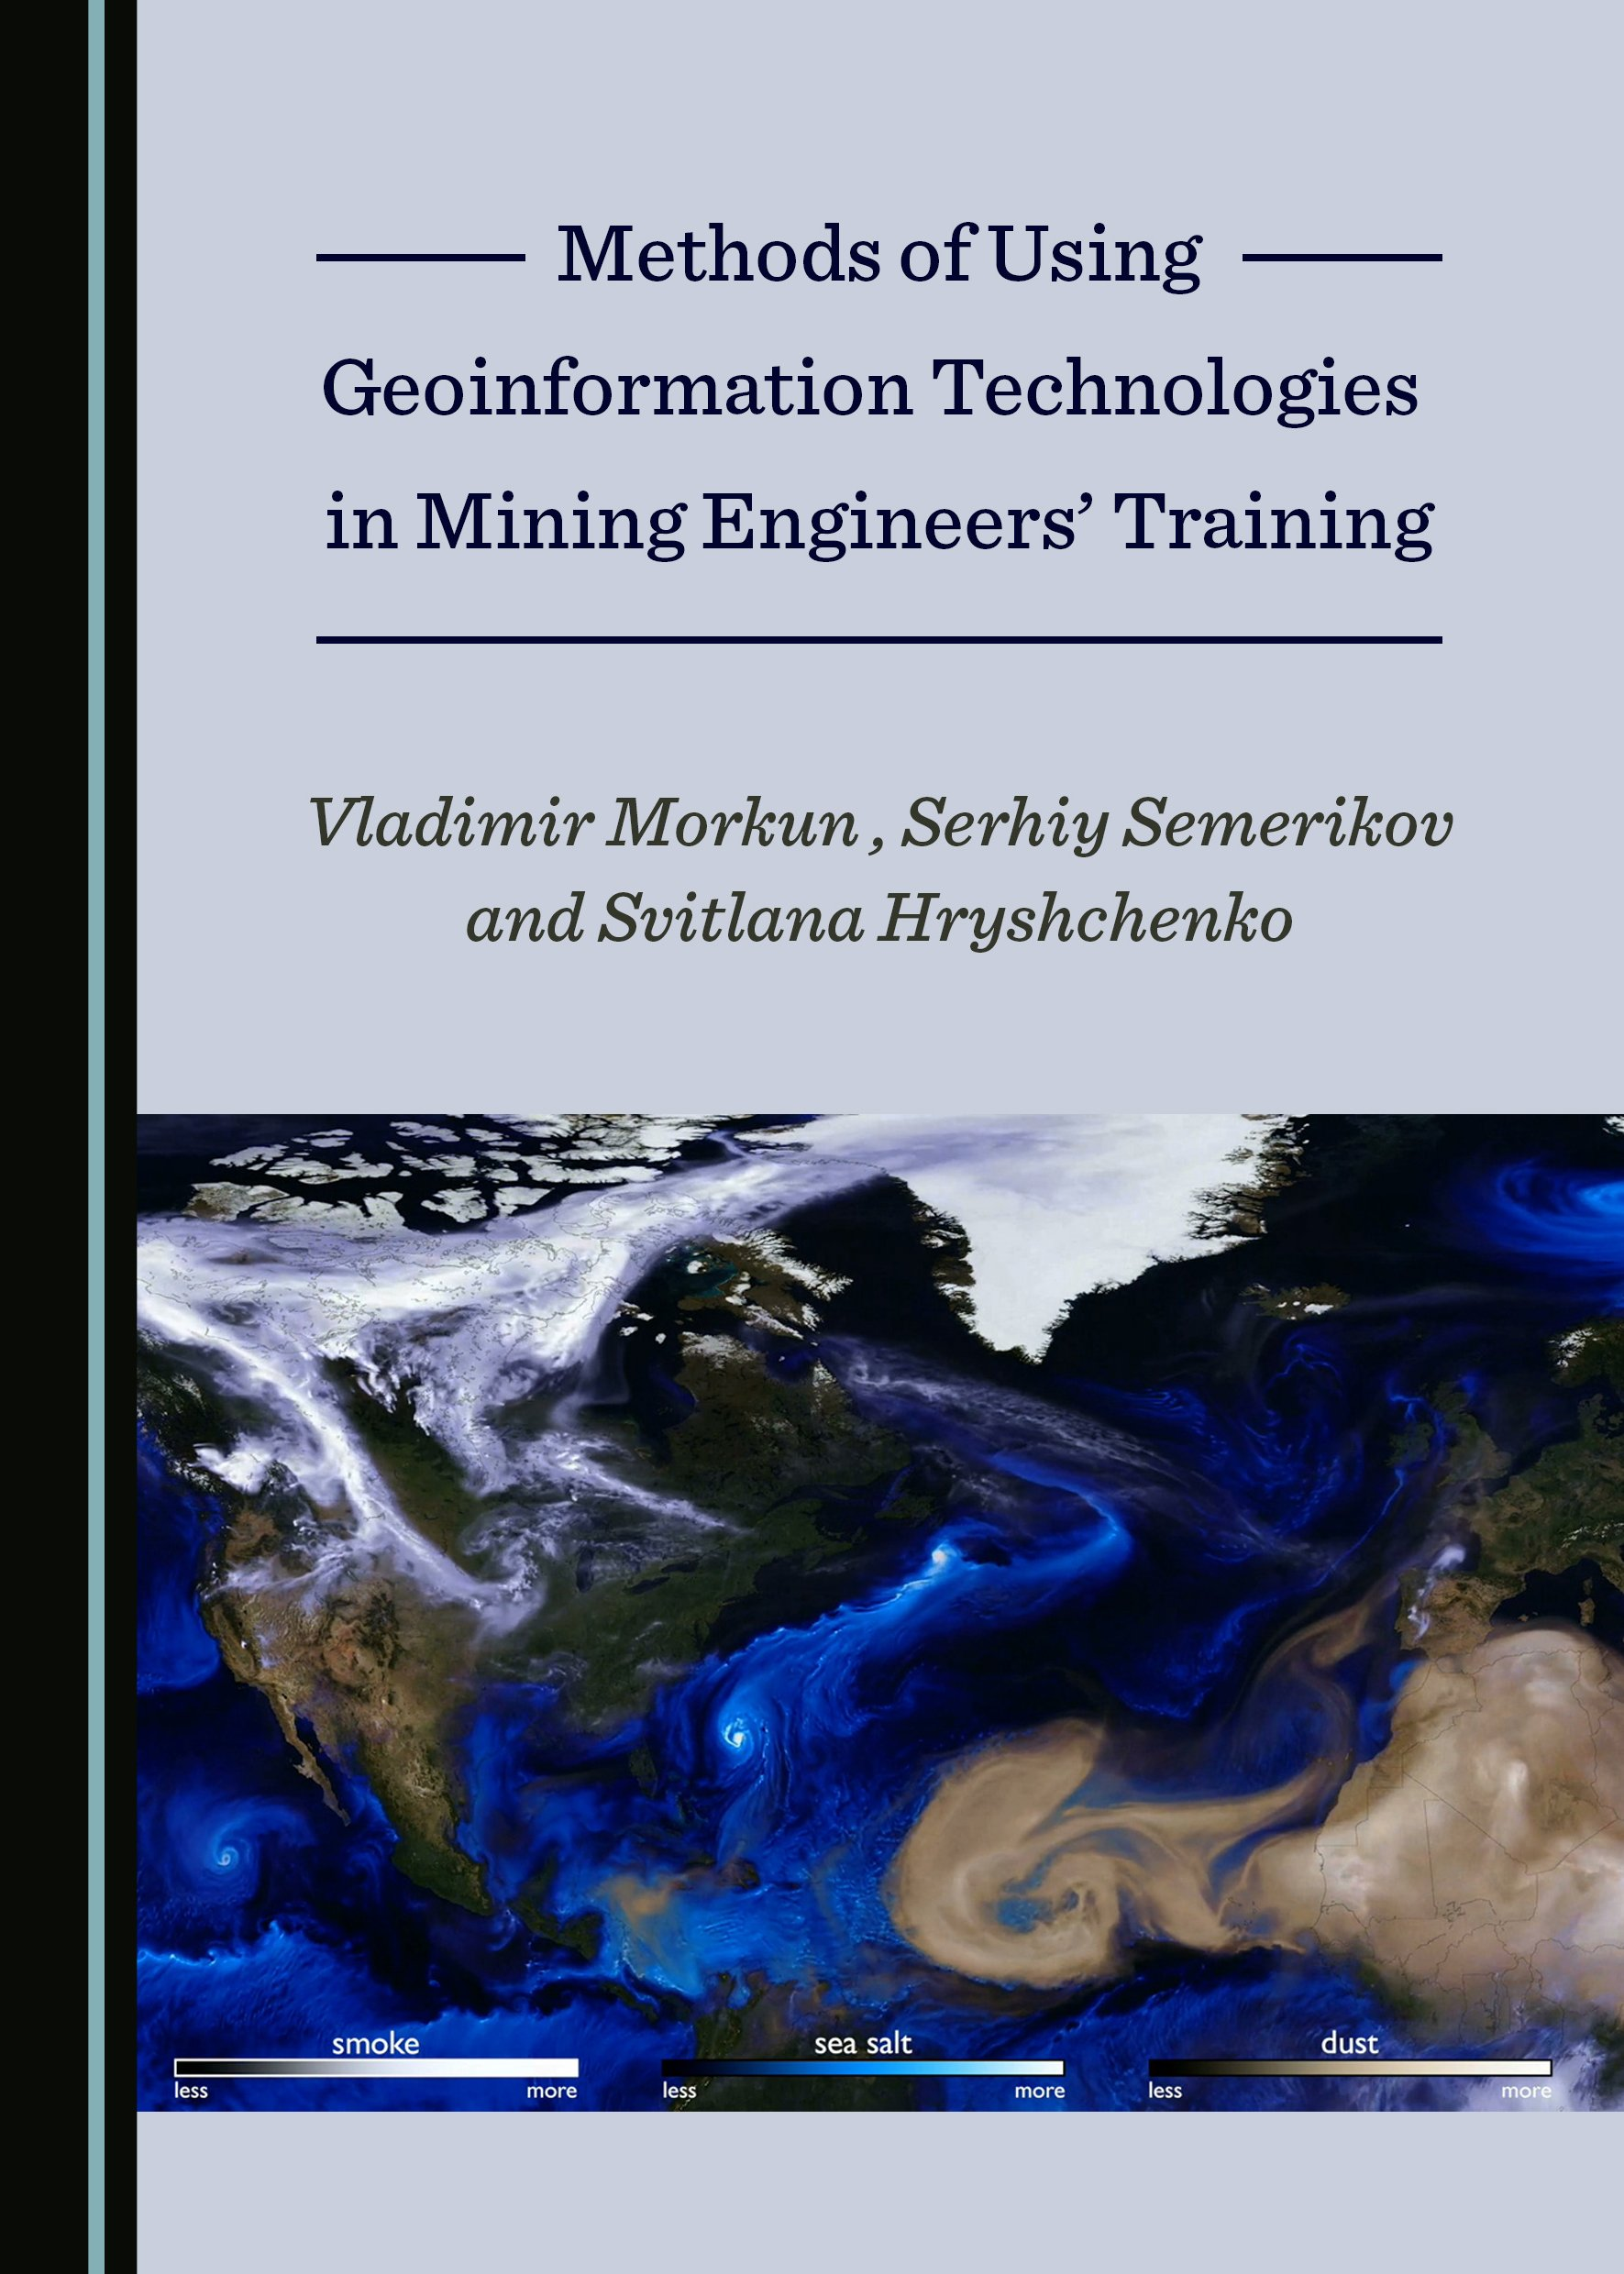 Methods of Using Geoinformation Technologies in Mining Engineers' Training